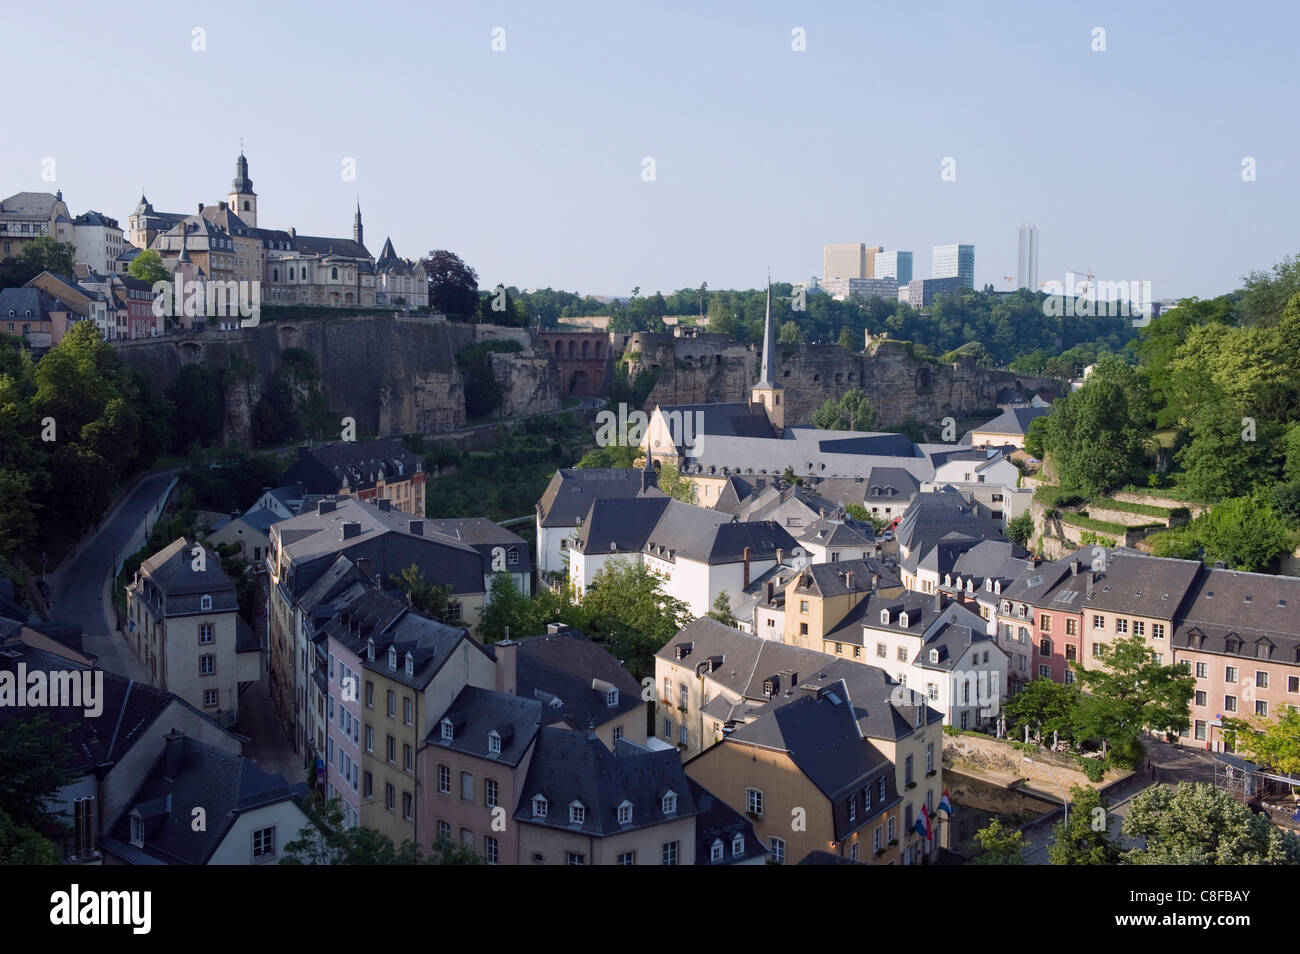 EU district on Kirchberg Plateau and Old Town fortifications, UNESCO World Heritage Site, Luxembourg, Grand Duchy - Stock Image